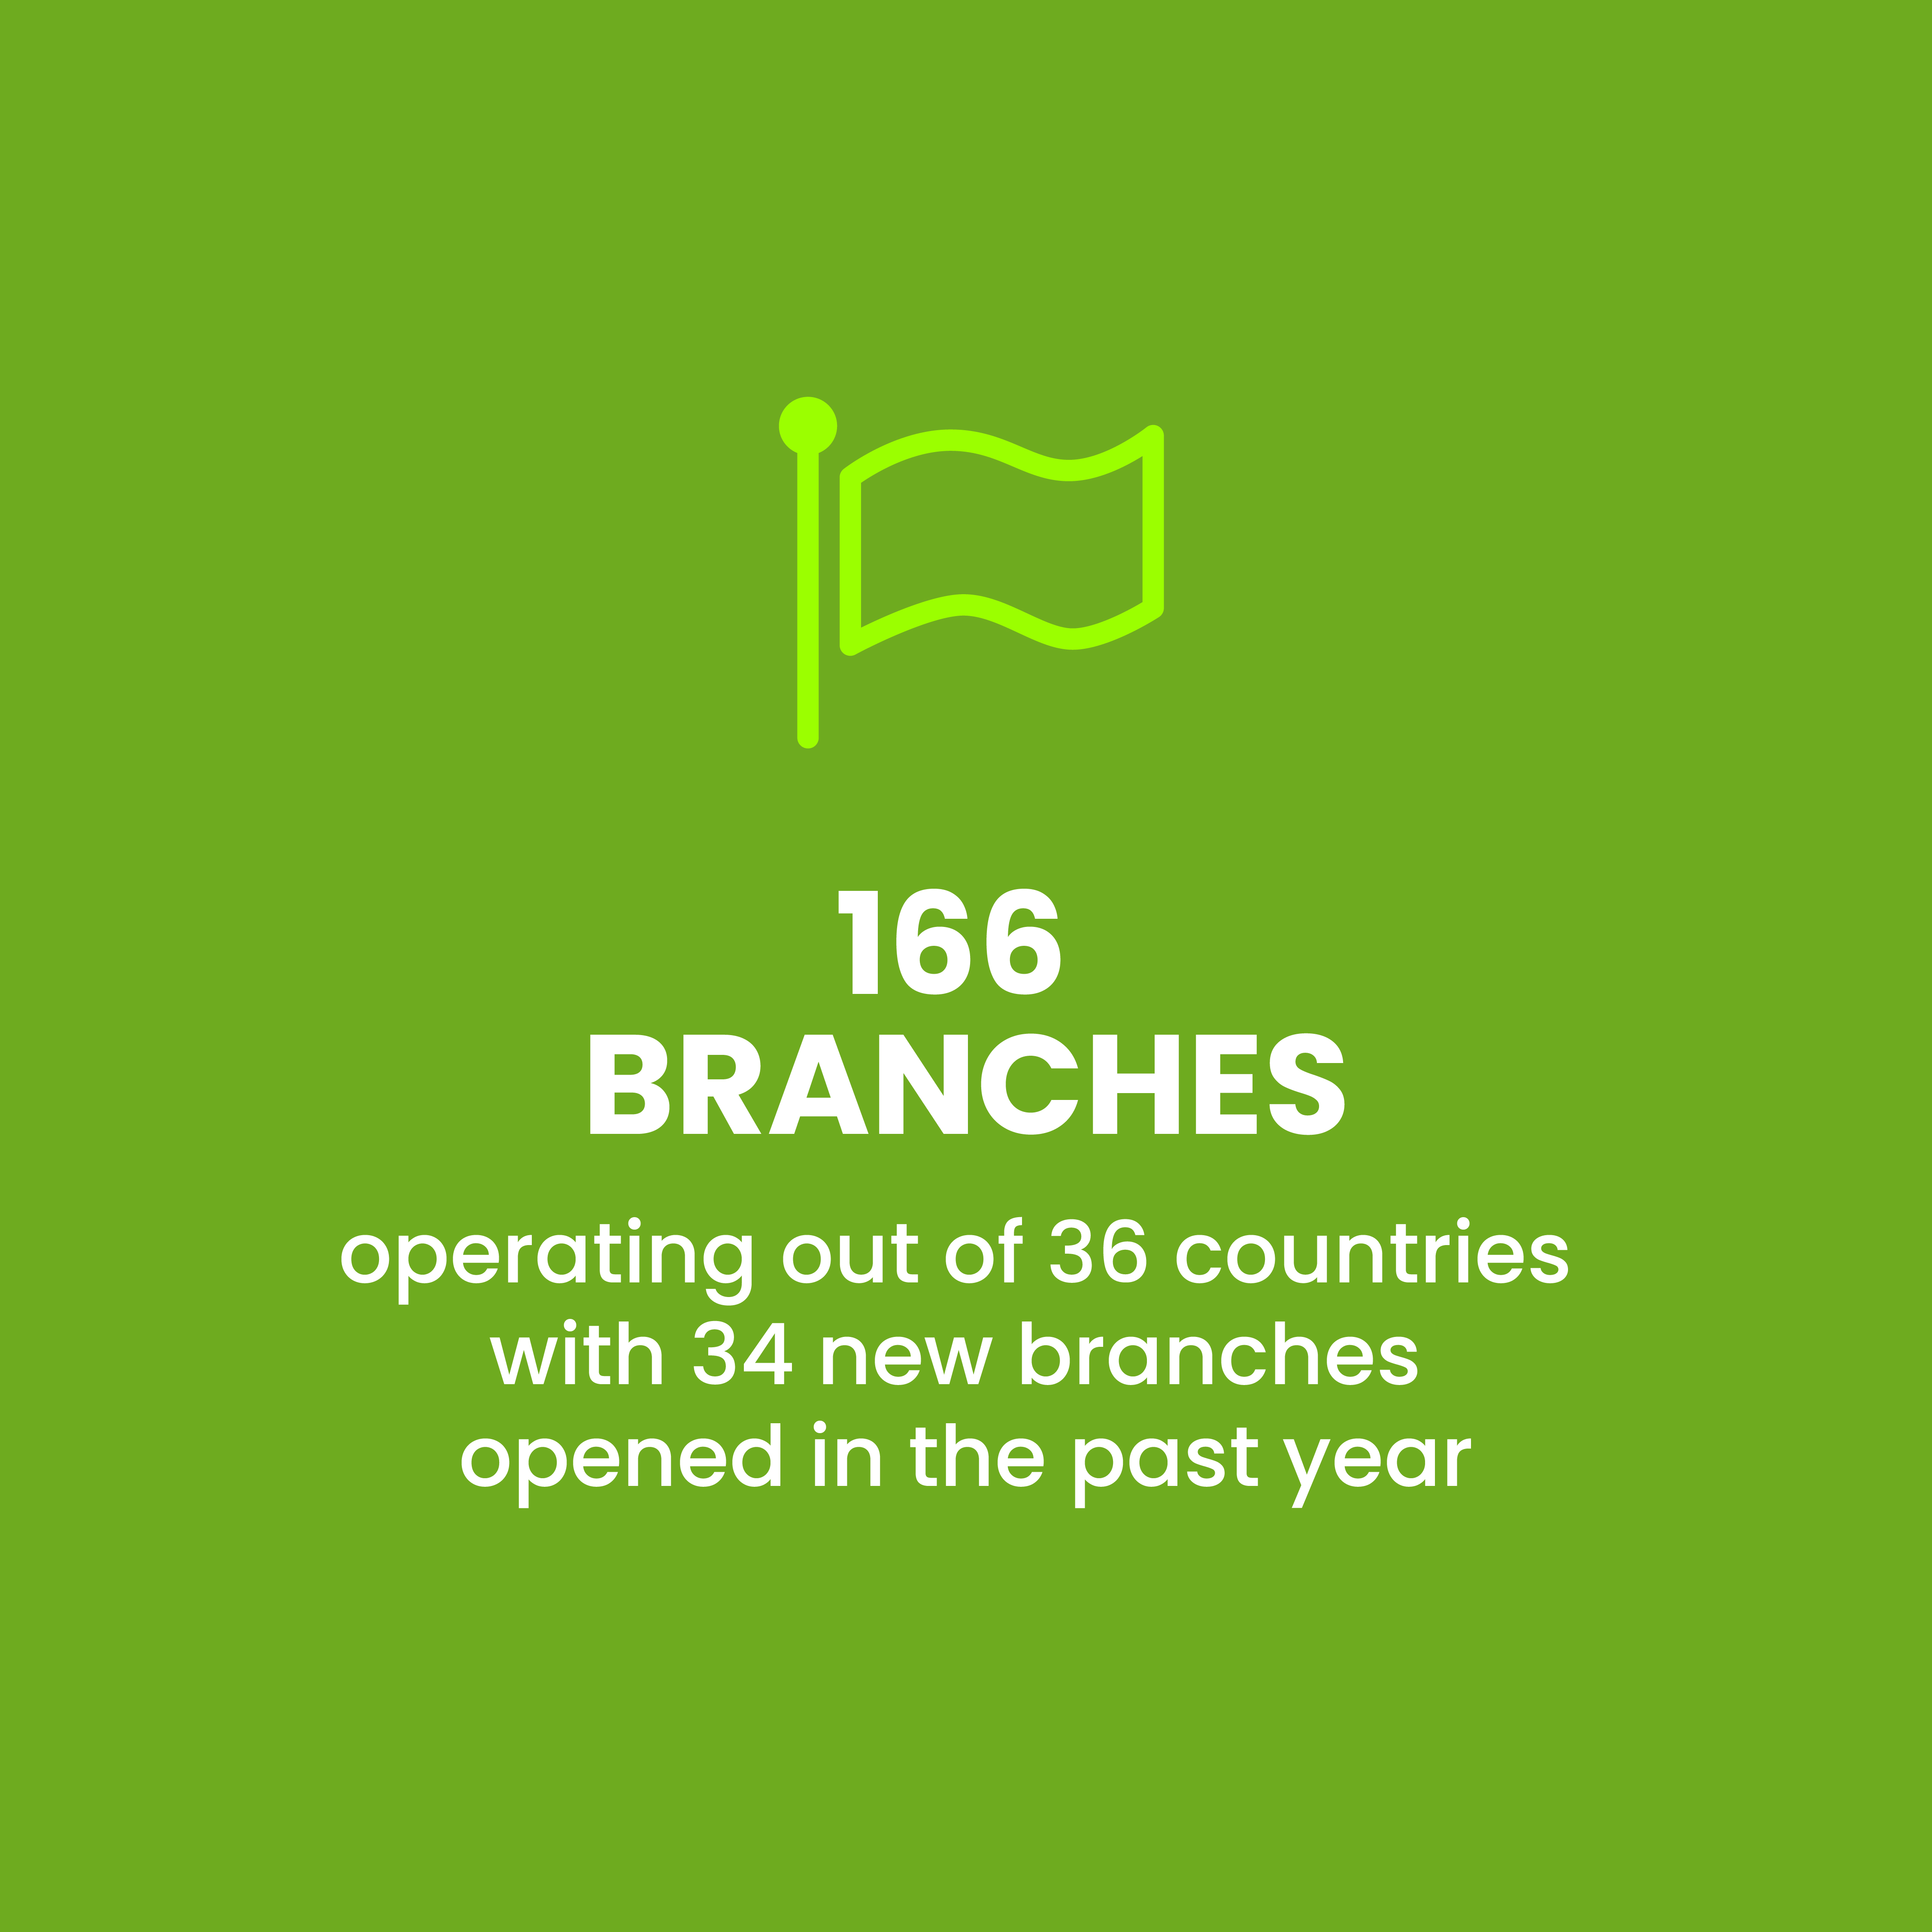 166 branches operating out of 36 countries with 34 new branches opened in the past year.